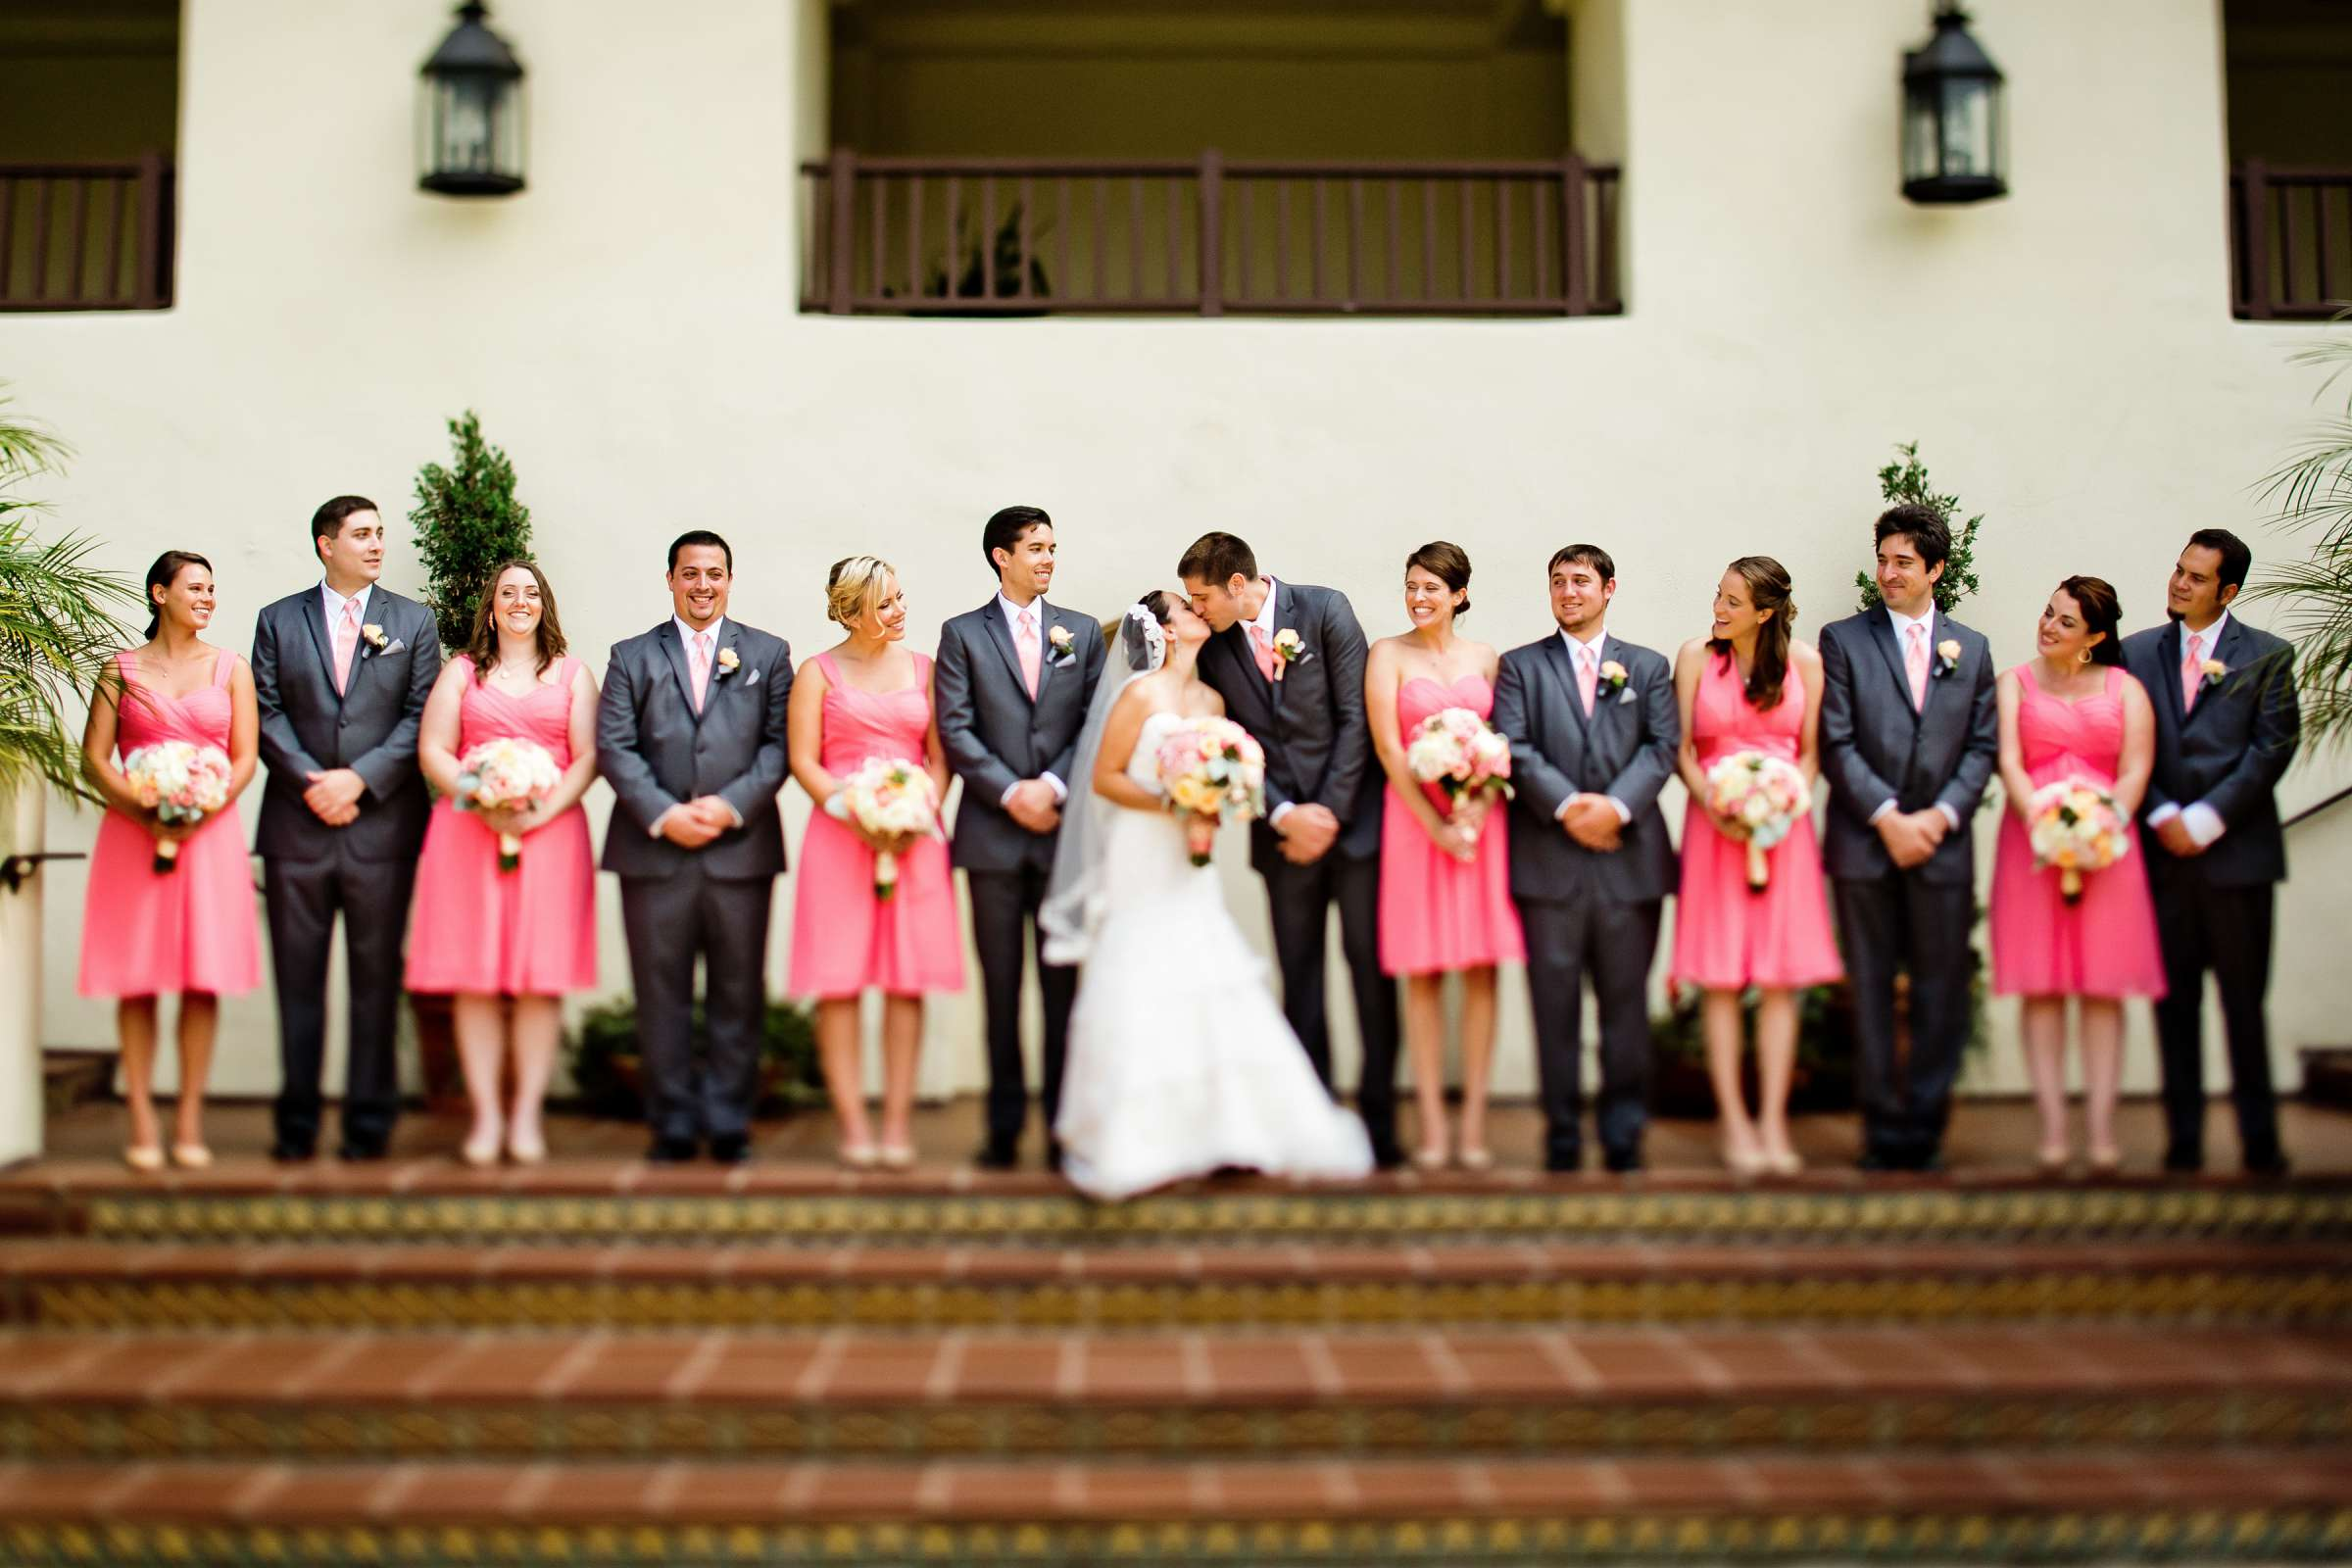 Estancia Wedding coordinated by Evelyn Francesca Events & Design, Megan and Patrick Wedding Photo #29 by True Photography